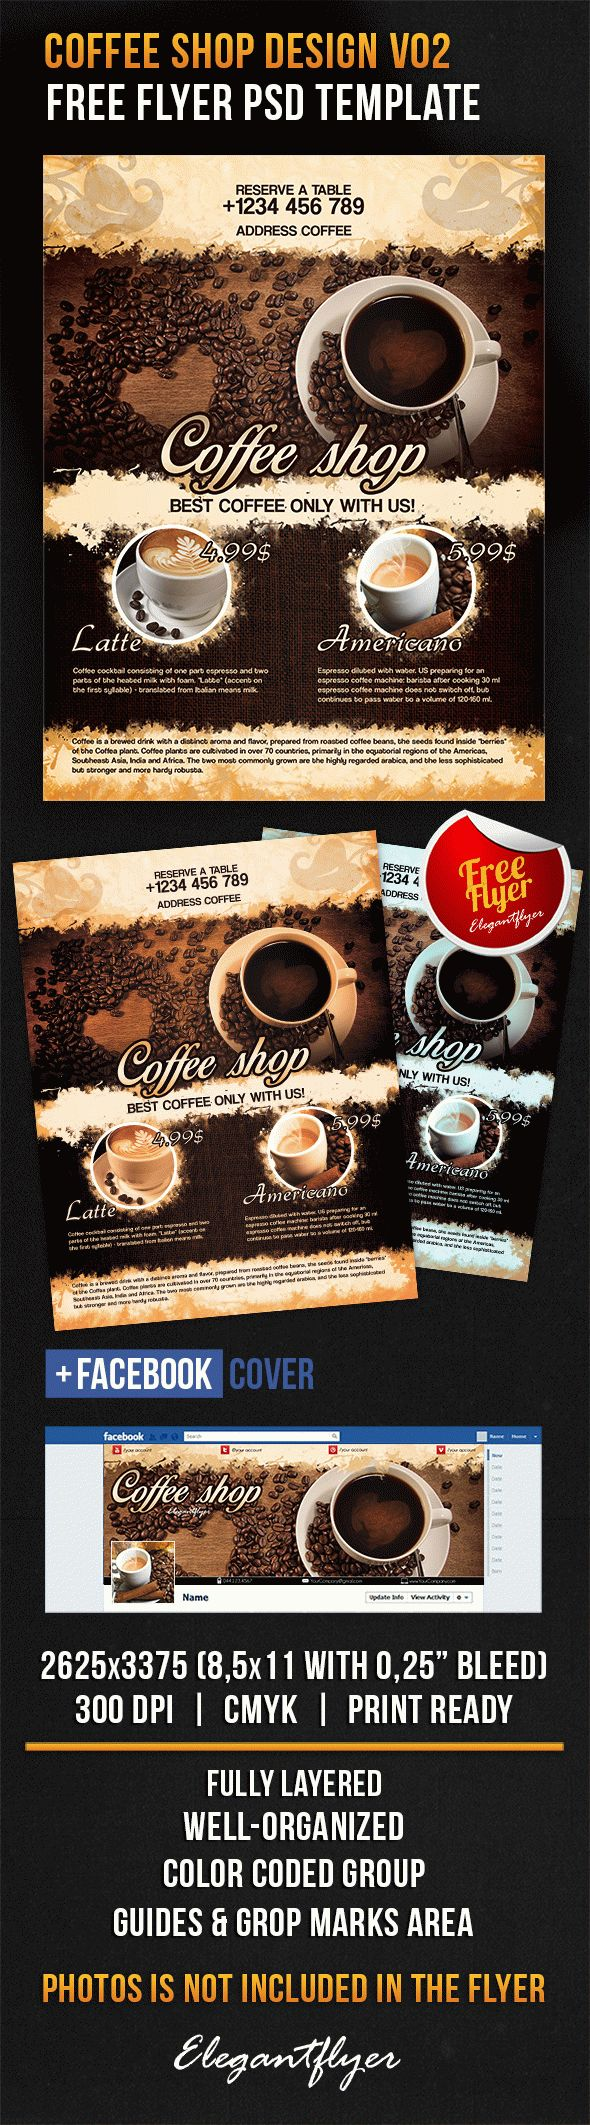 Coffee Shop Design V02 – Free Flyer PSD Template – By